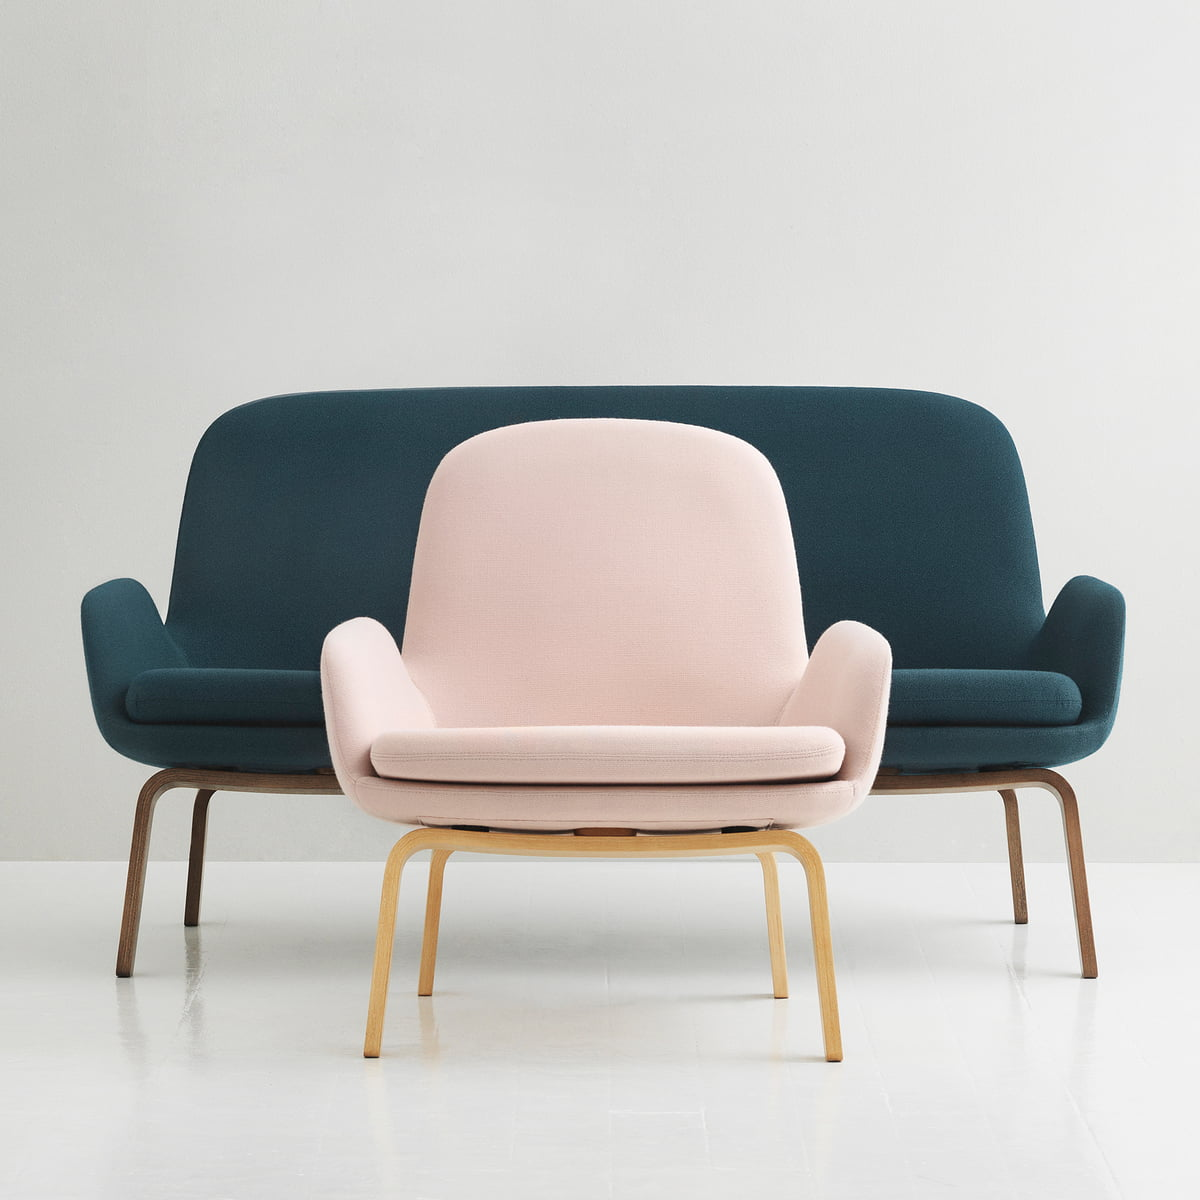 Era sofa von normann copenhagen im shop for Barhocker normann copenhagen